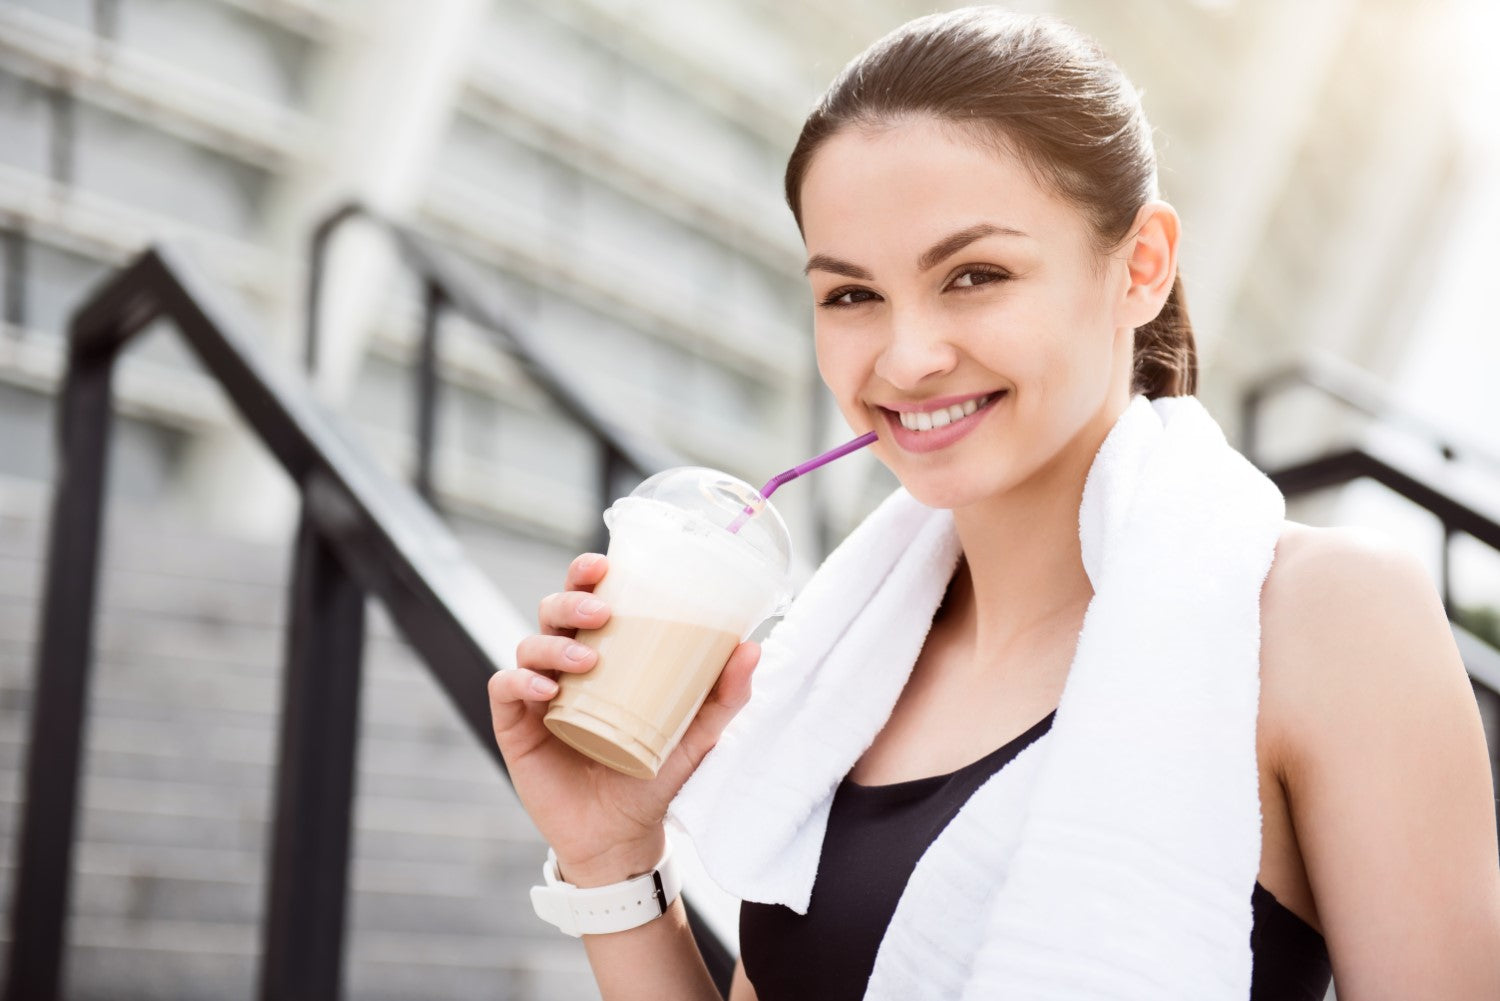 lady with workout outfit drinking coffee